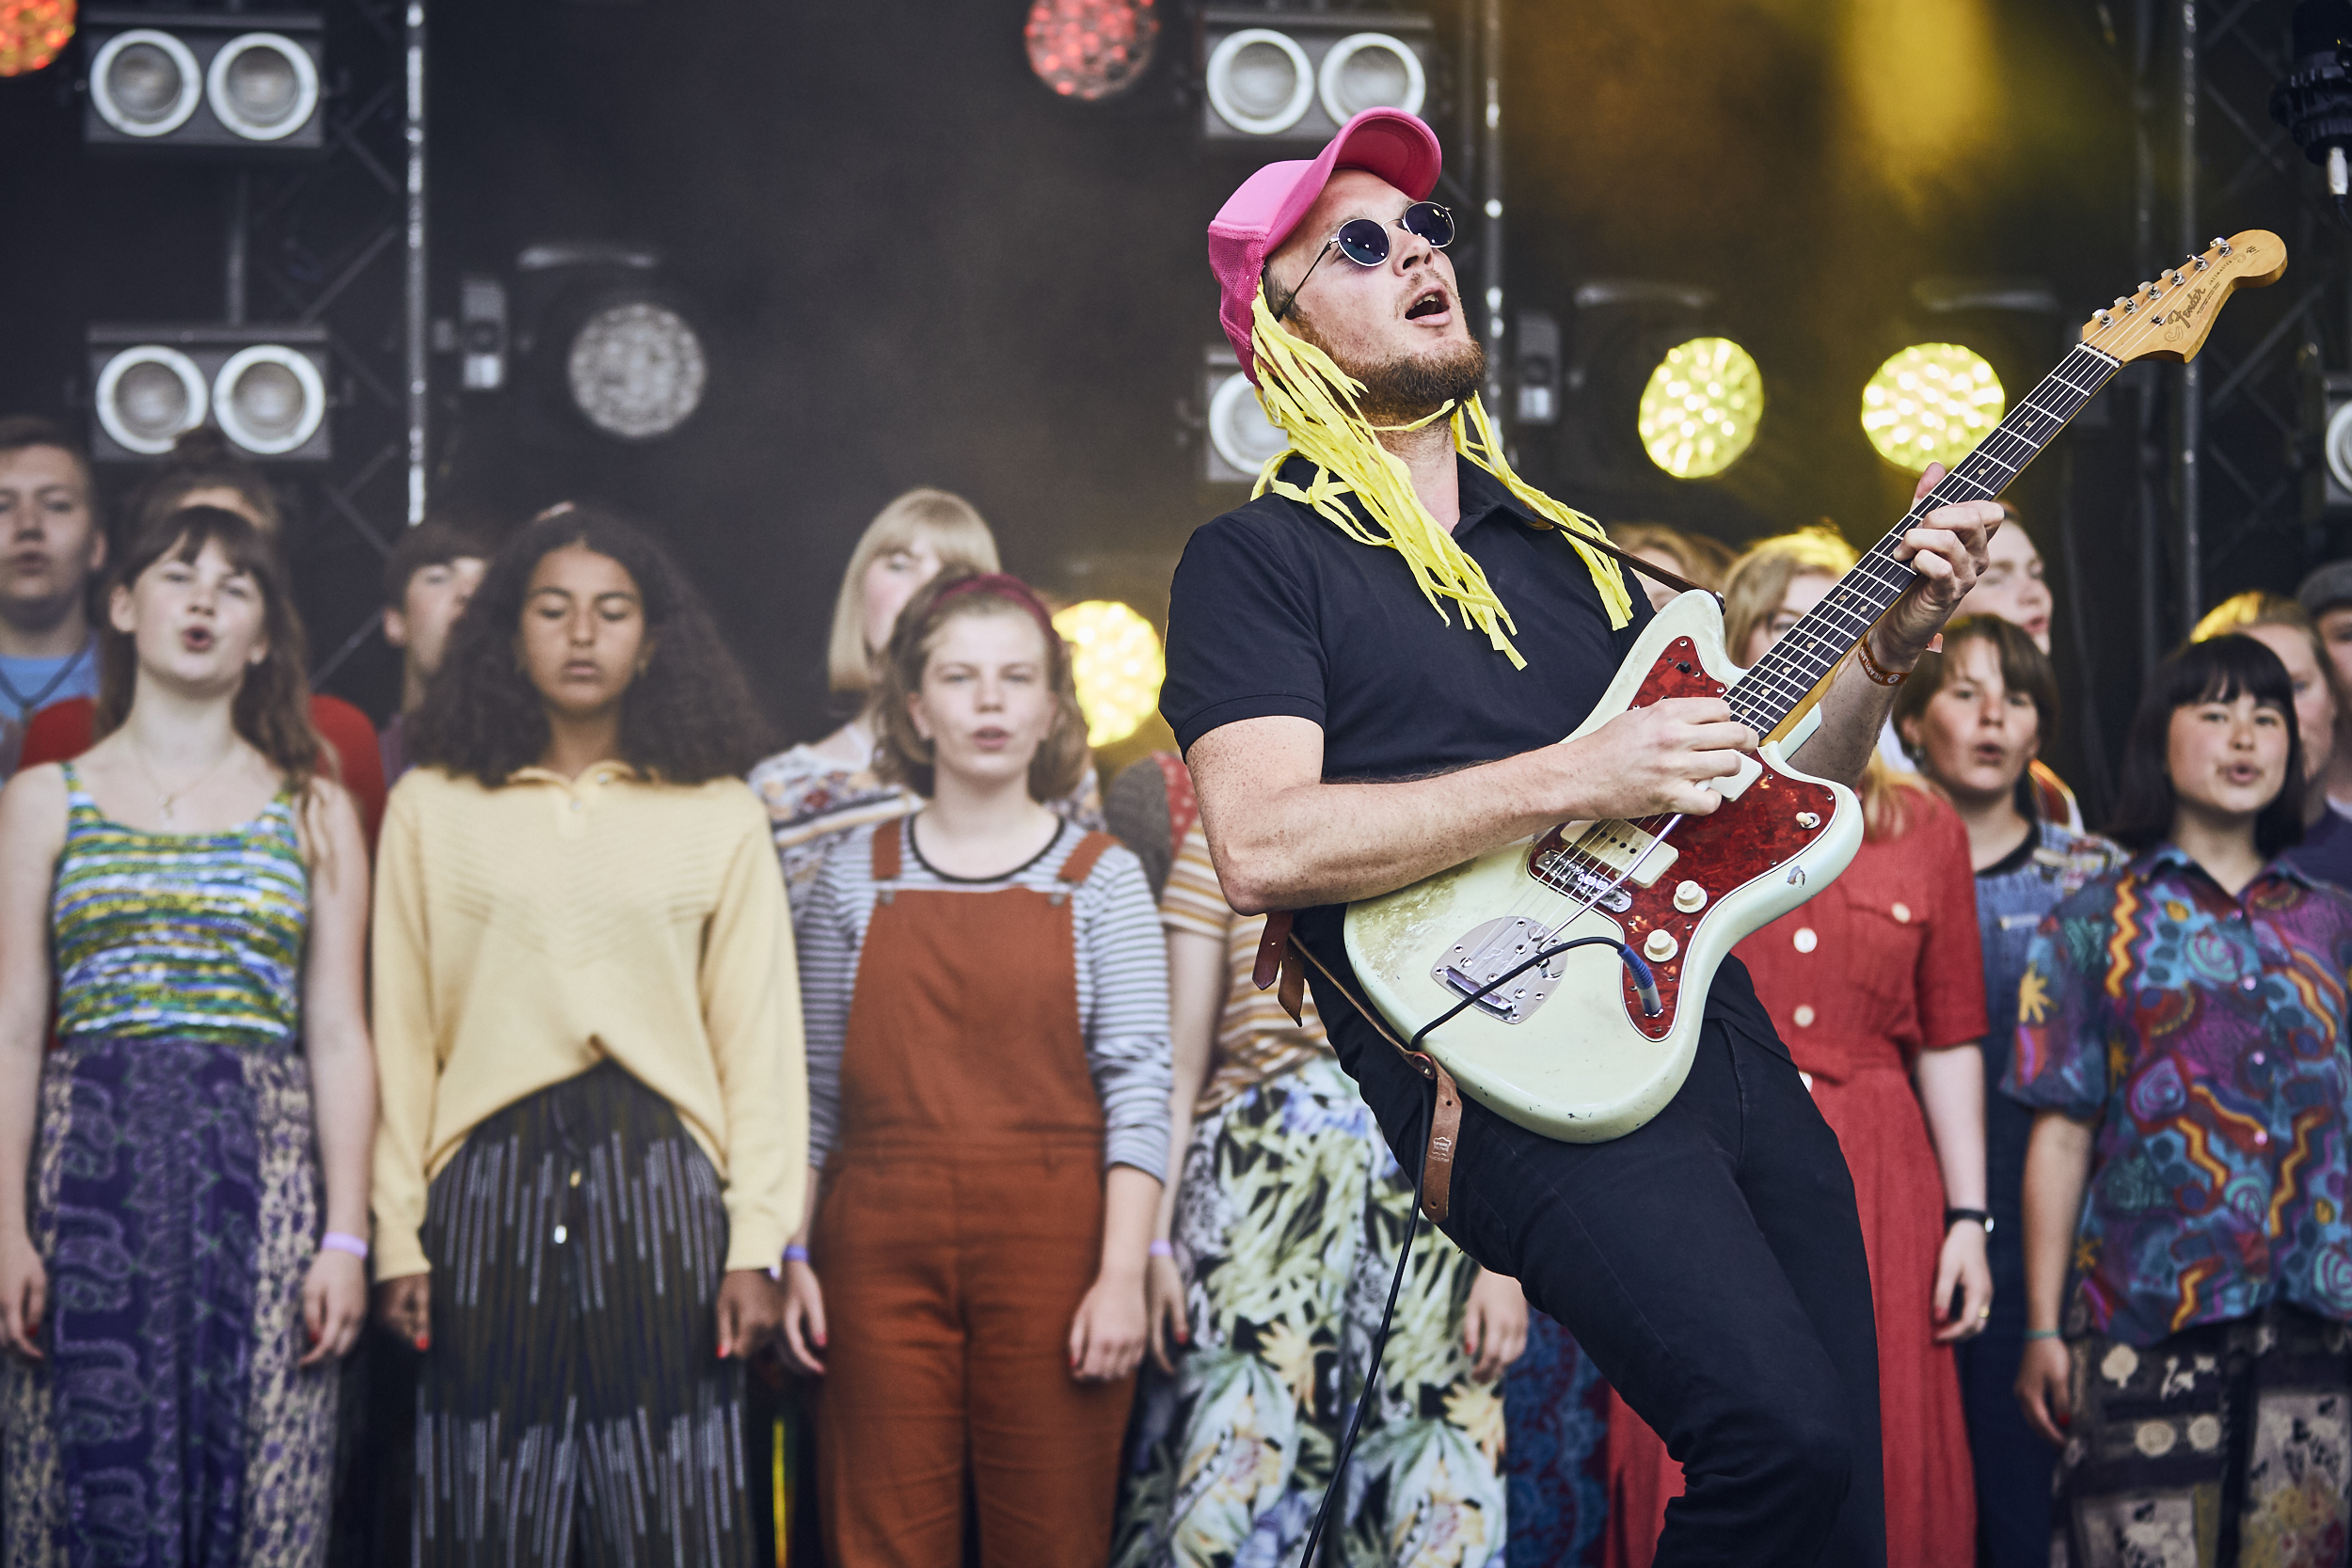 Bisse performing at Heartland Festival, 2017. Photo by Thomas Flensted.